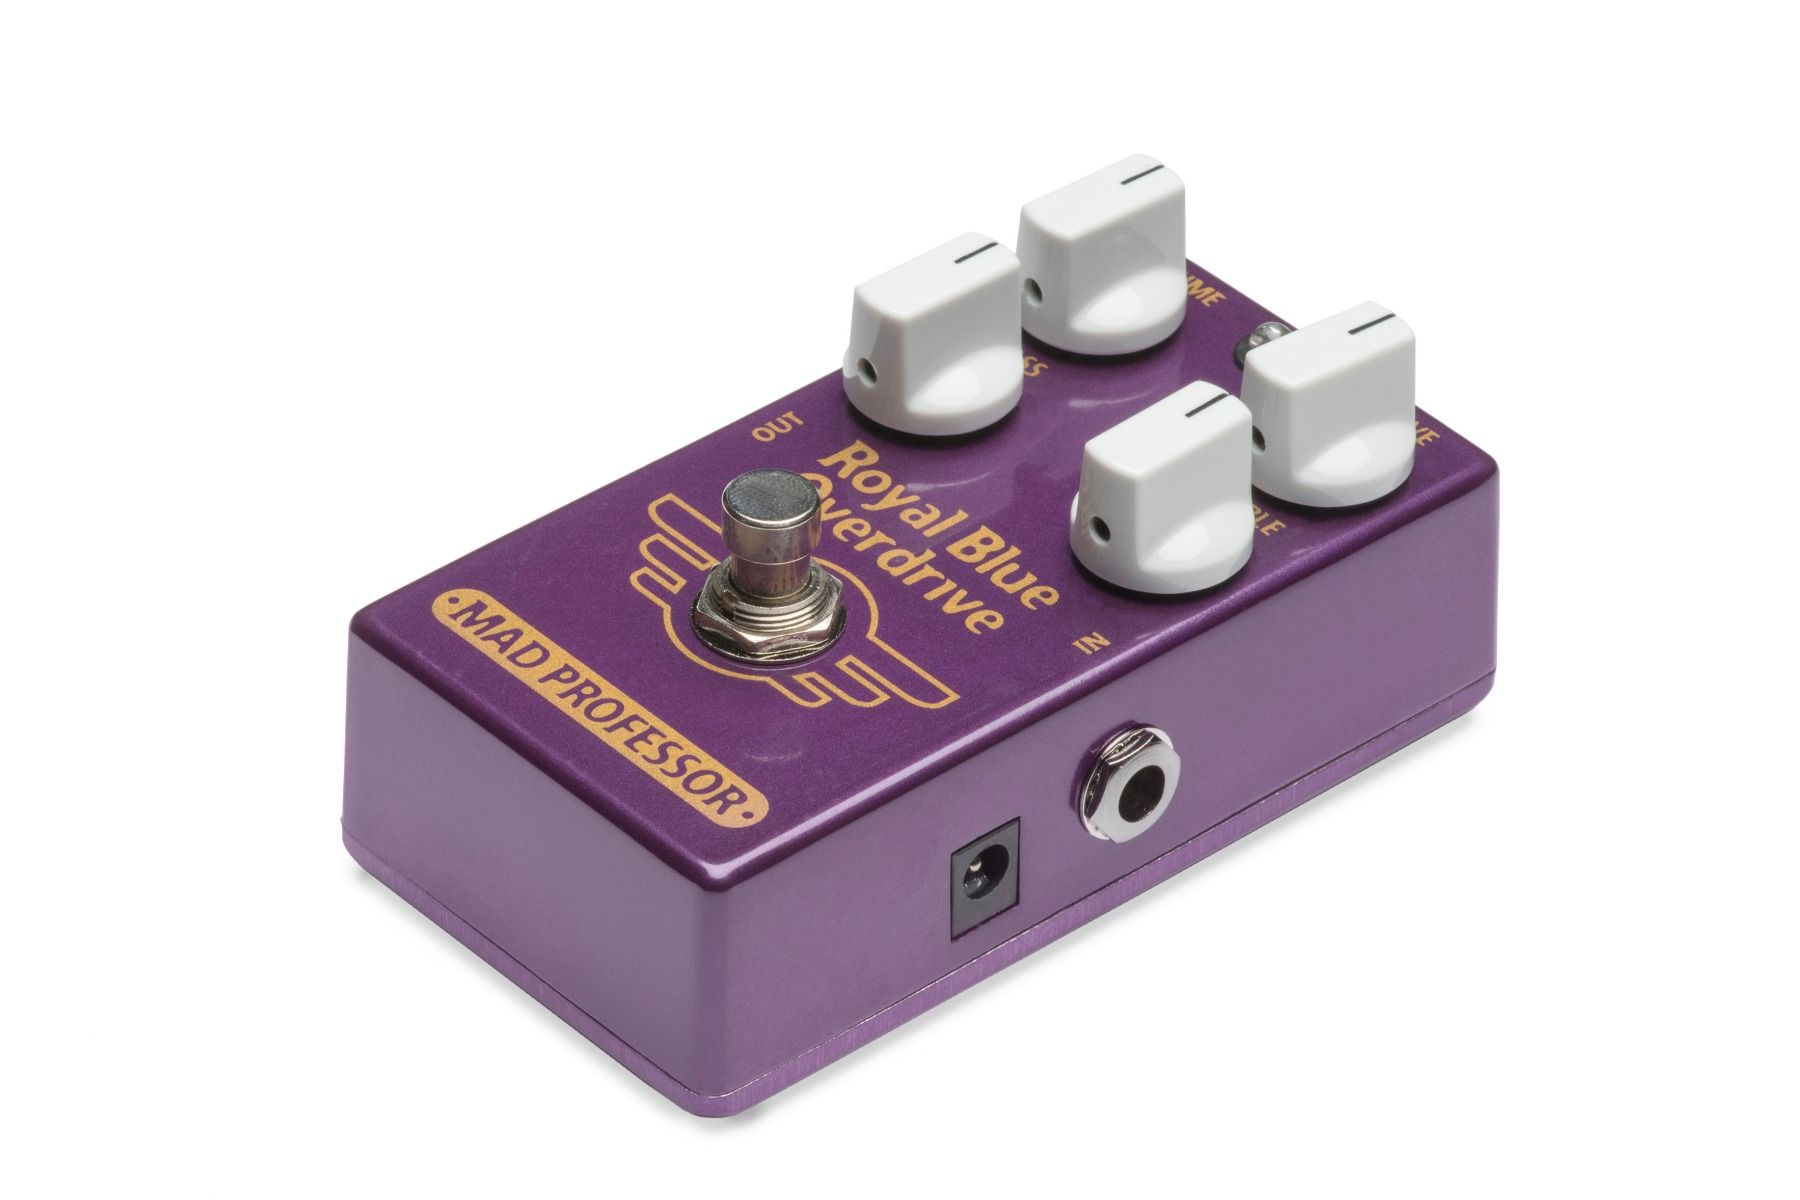 ROYAL BLUE OVERDRIVE FAC